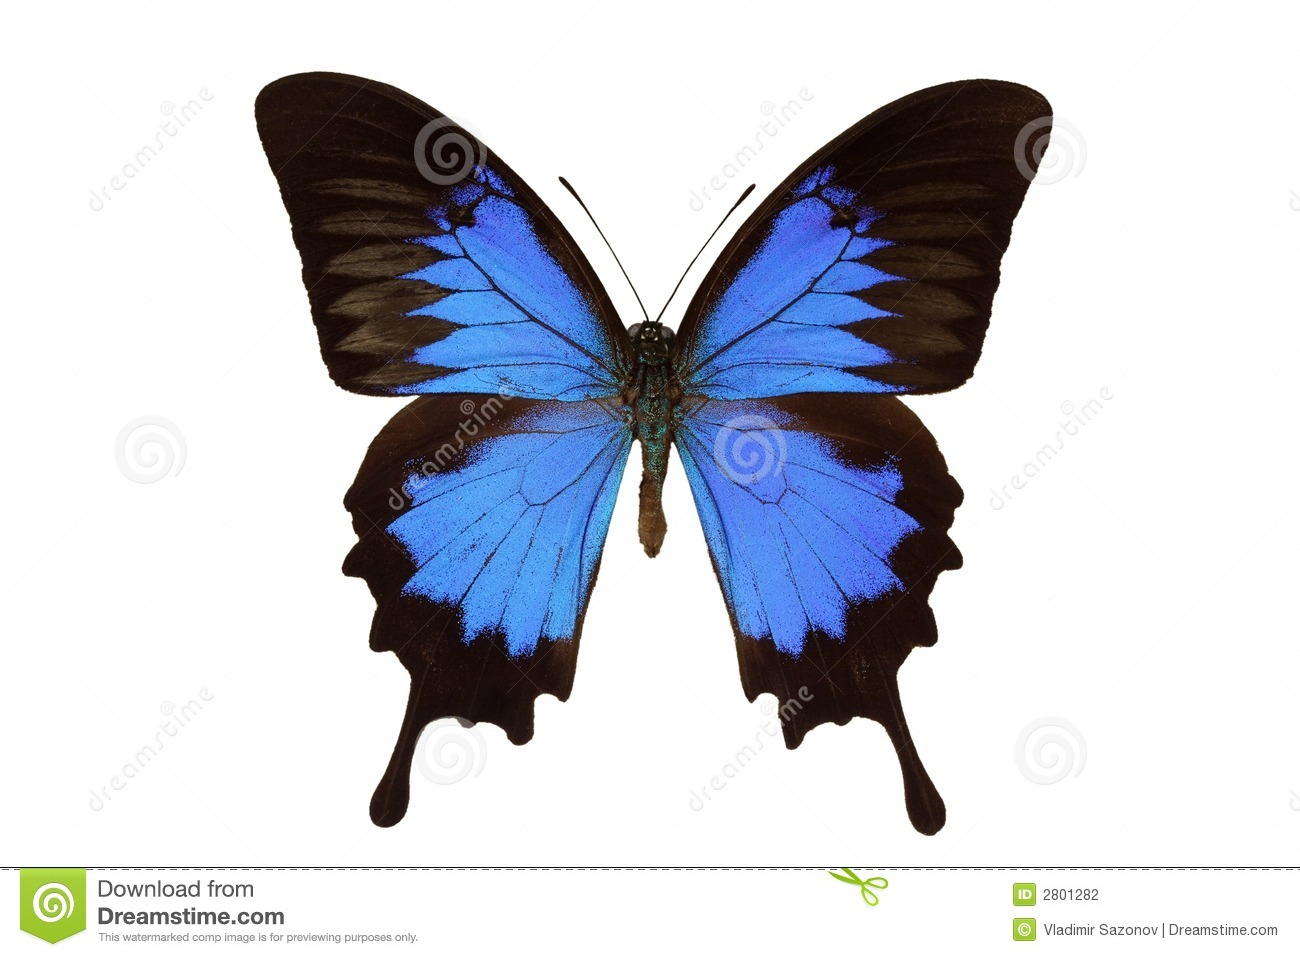 Ulysses Butterfly clipart #17, Download drawings